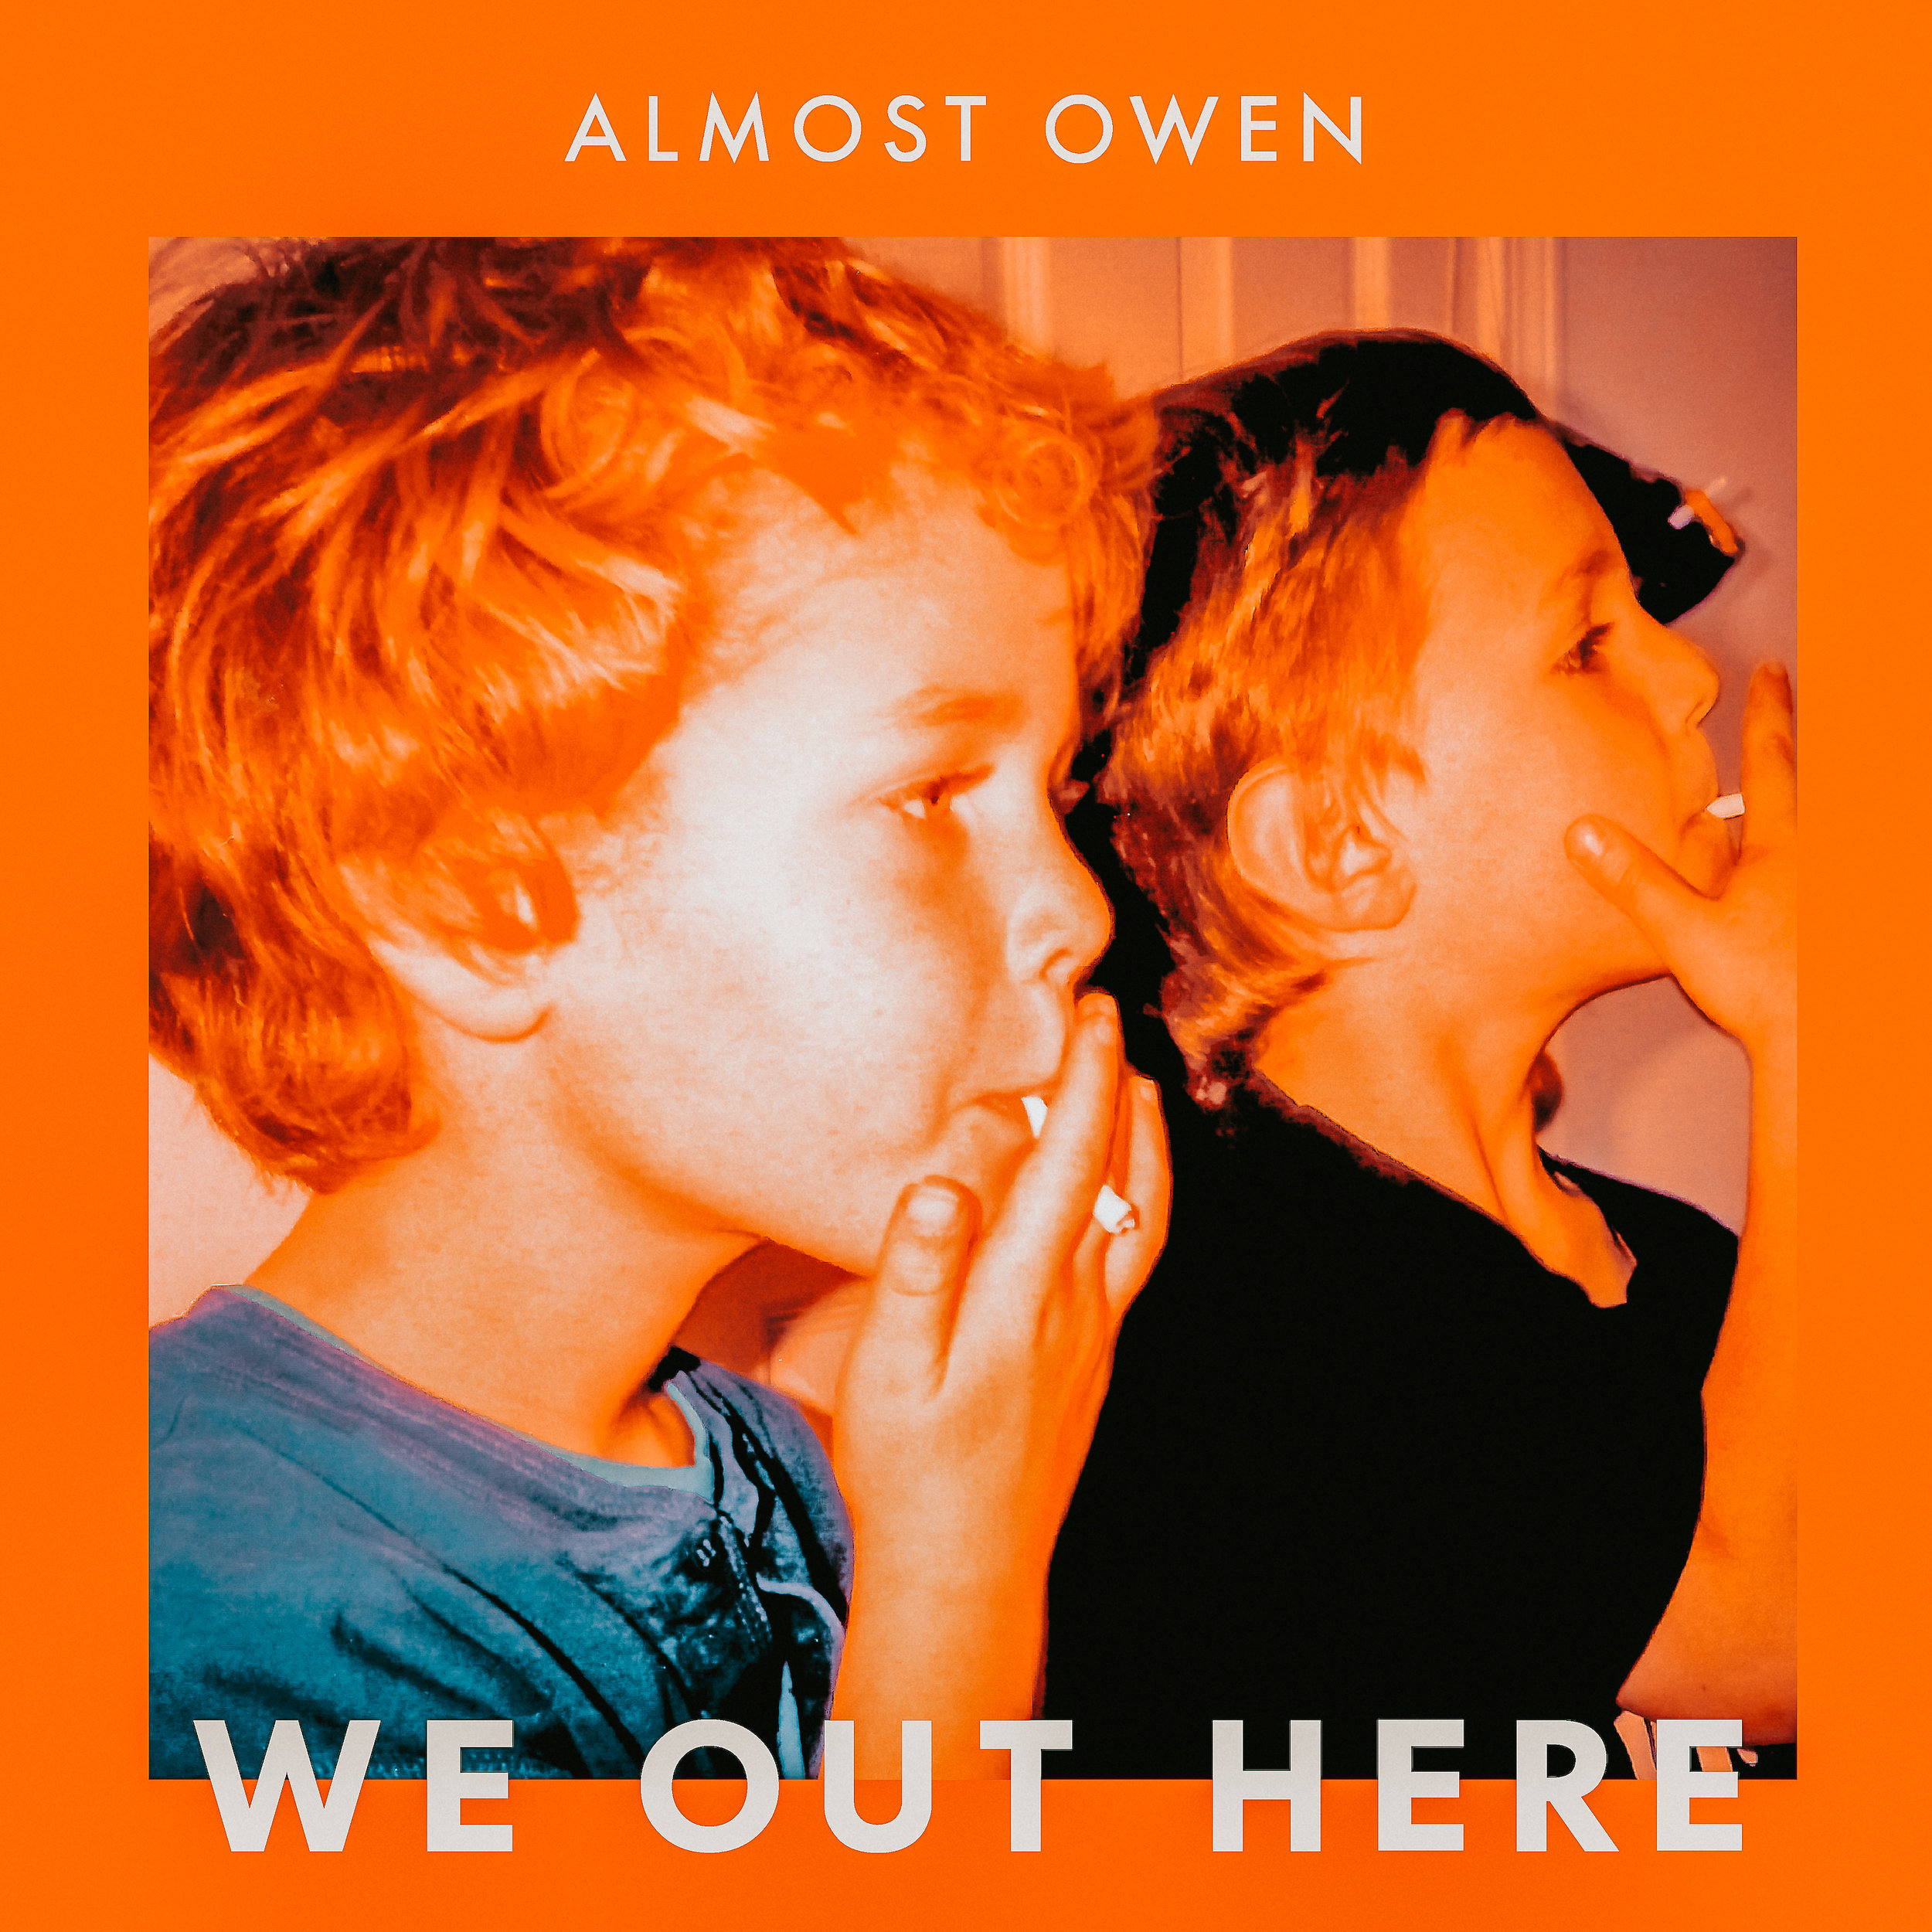 Almost Owen - We Out Here artwork 1.jpg